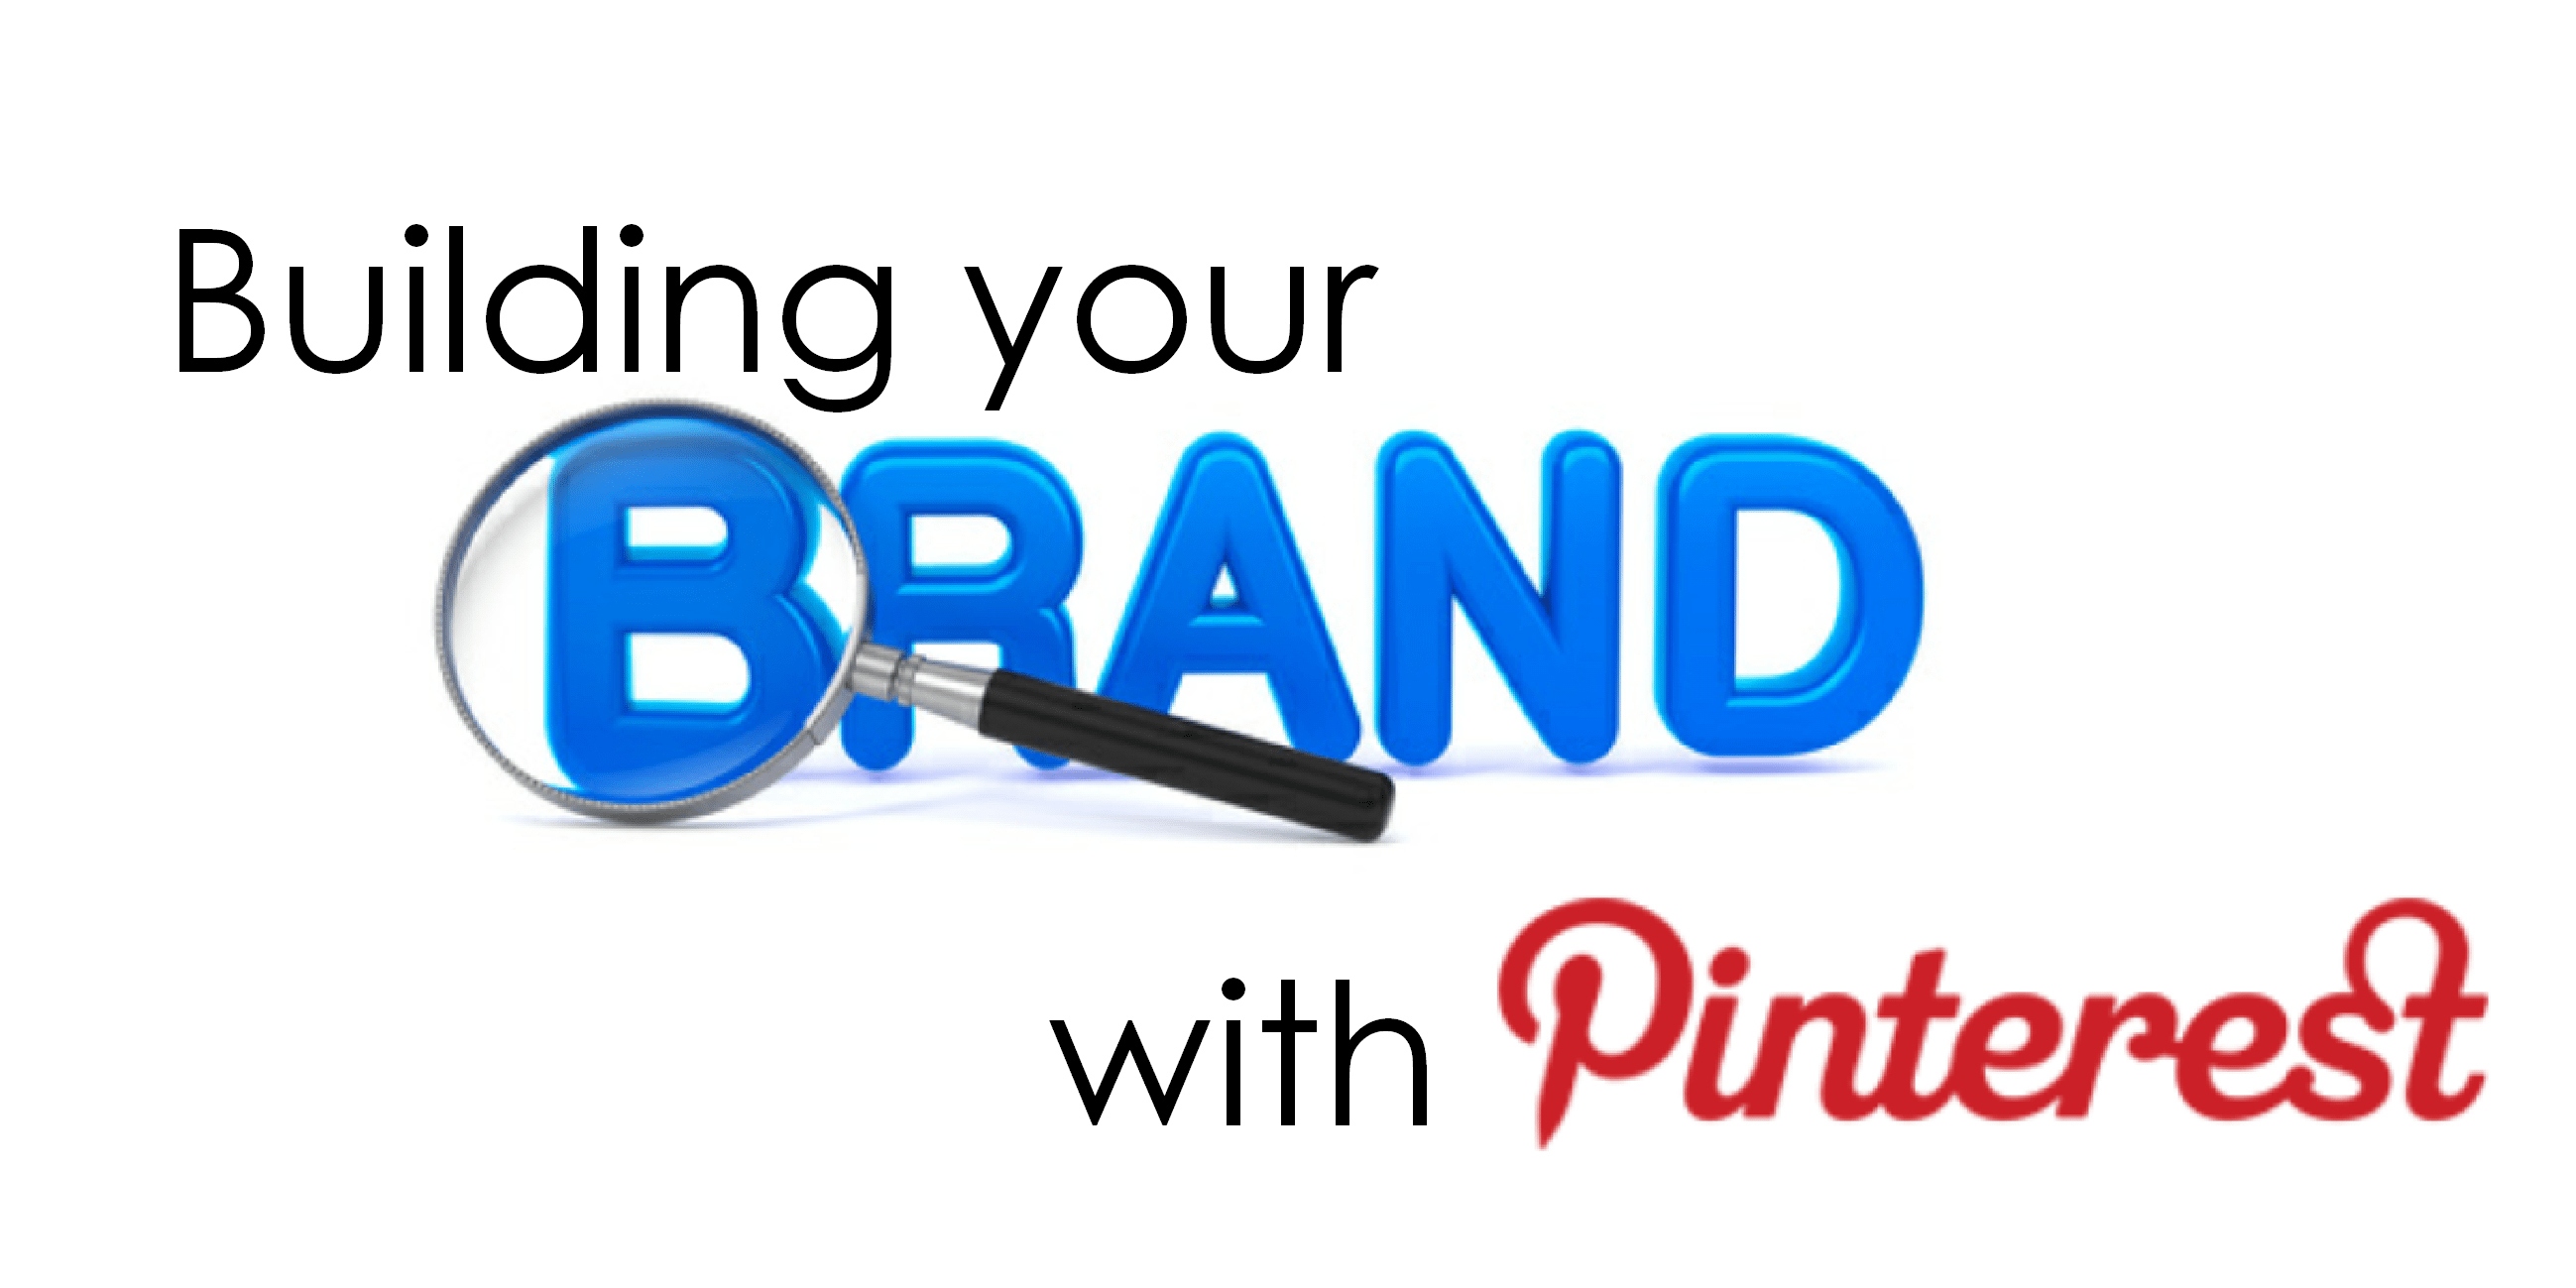 image of the cover photo for Building your Brand with Pinterest article by Martin Reynolds